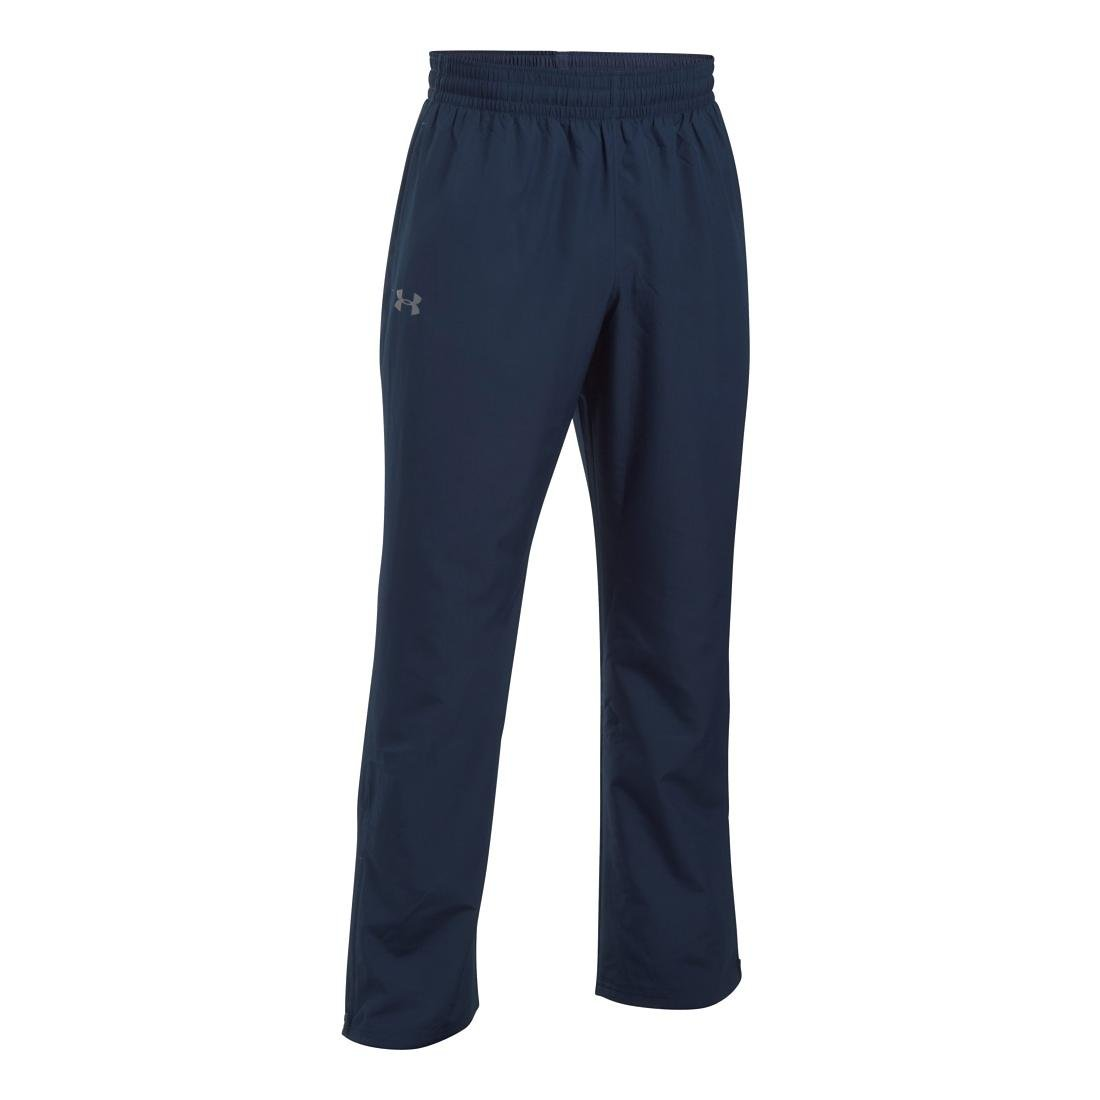 Under Armour Men's Vital Woven Pant, Midnight Navy, XS-R